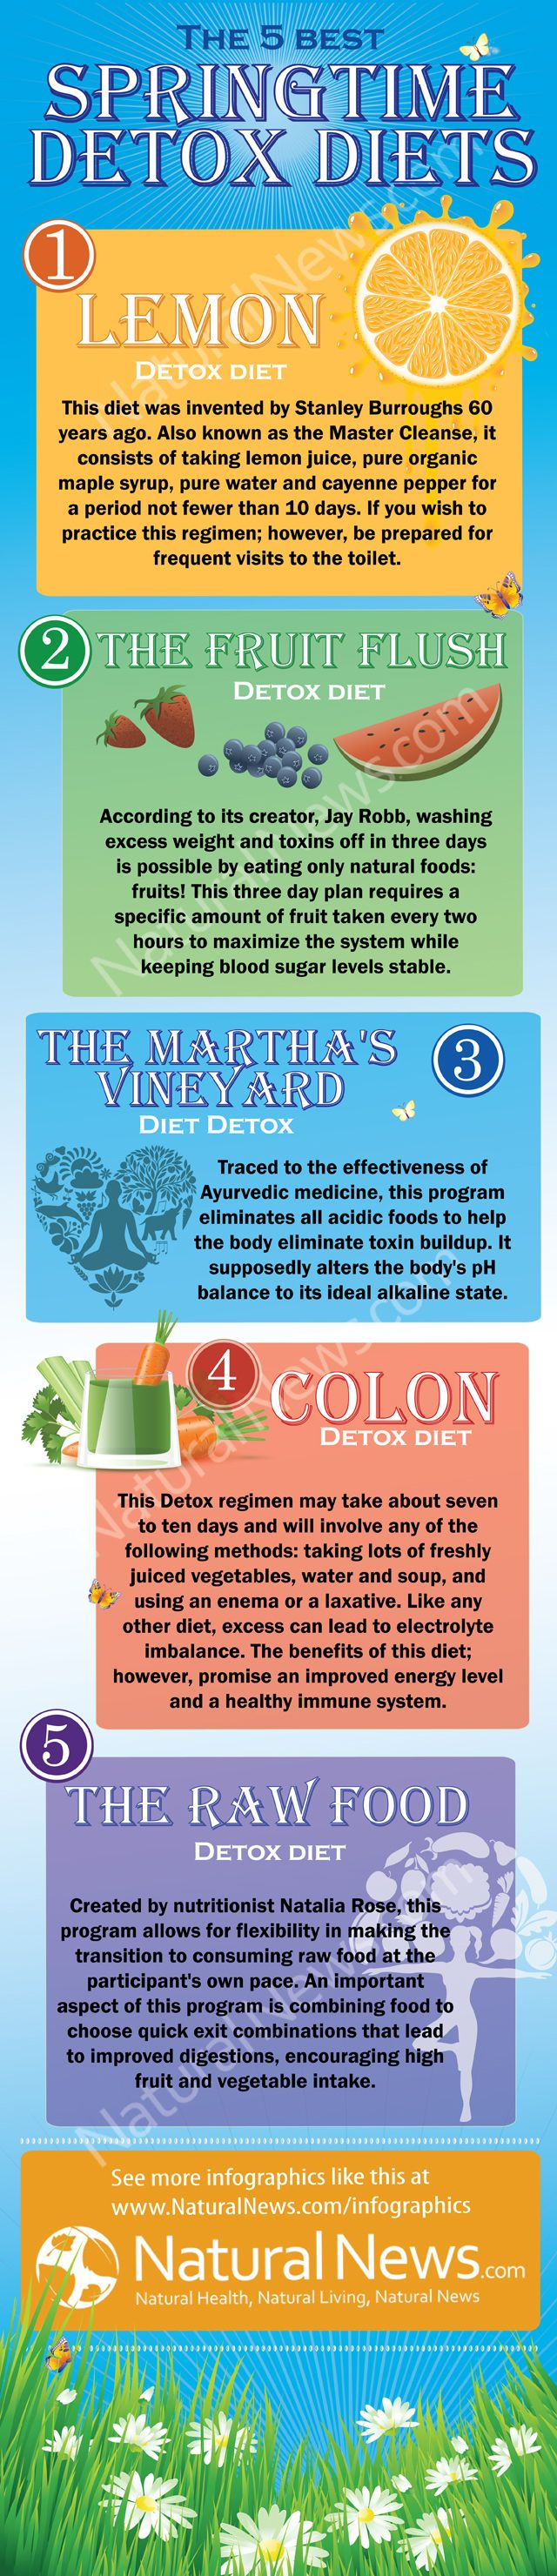 The 5 Best Detox Diets - Best do-it-yourself Arduino Simple Detox Diet Plan That Only Needs To Be Done Once A Month To Work - http://tinyurl.com/detoxjuice411